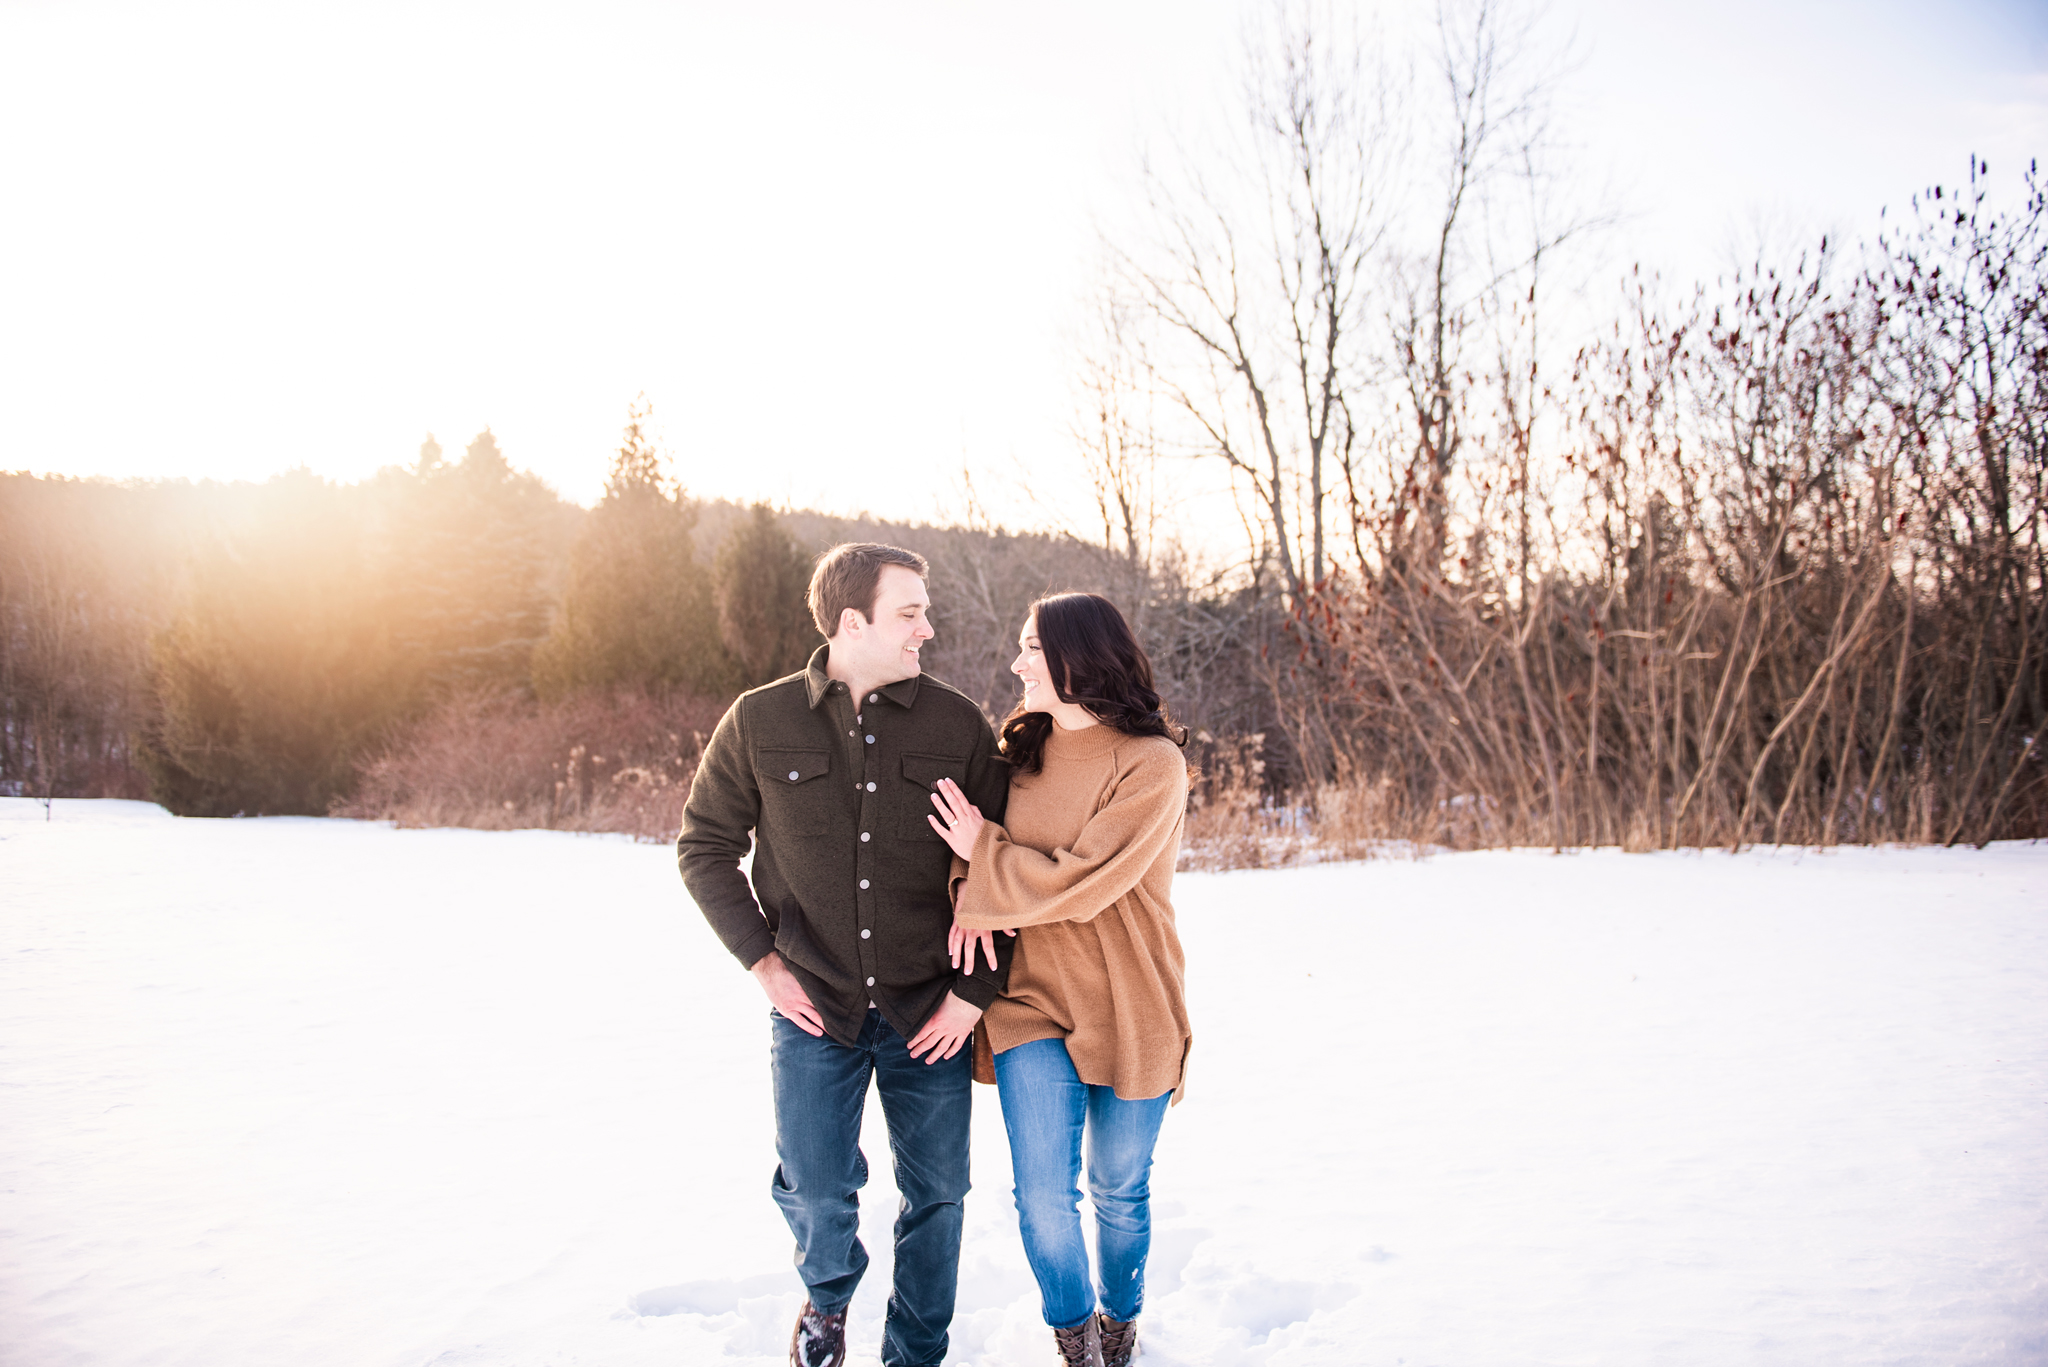 Fallbrook_Central_NY_Engagement_Session_JILL_STUDIO_Rochester_NY_Photographer_DSC_4863.jpg